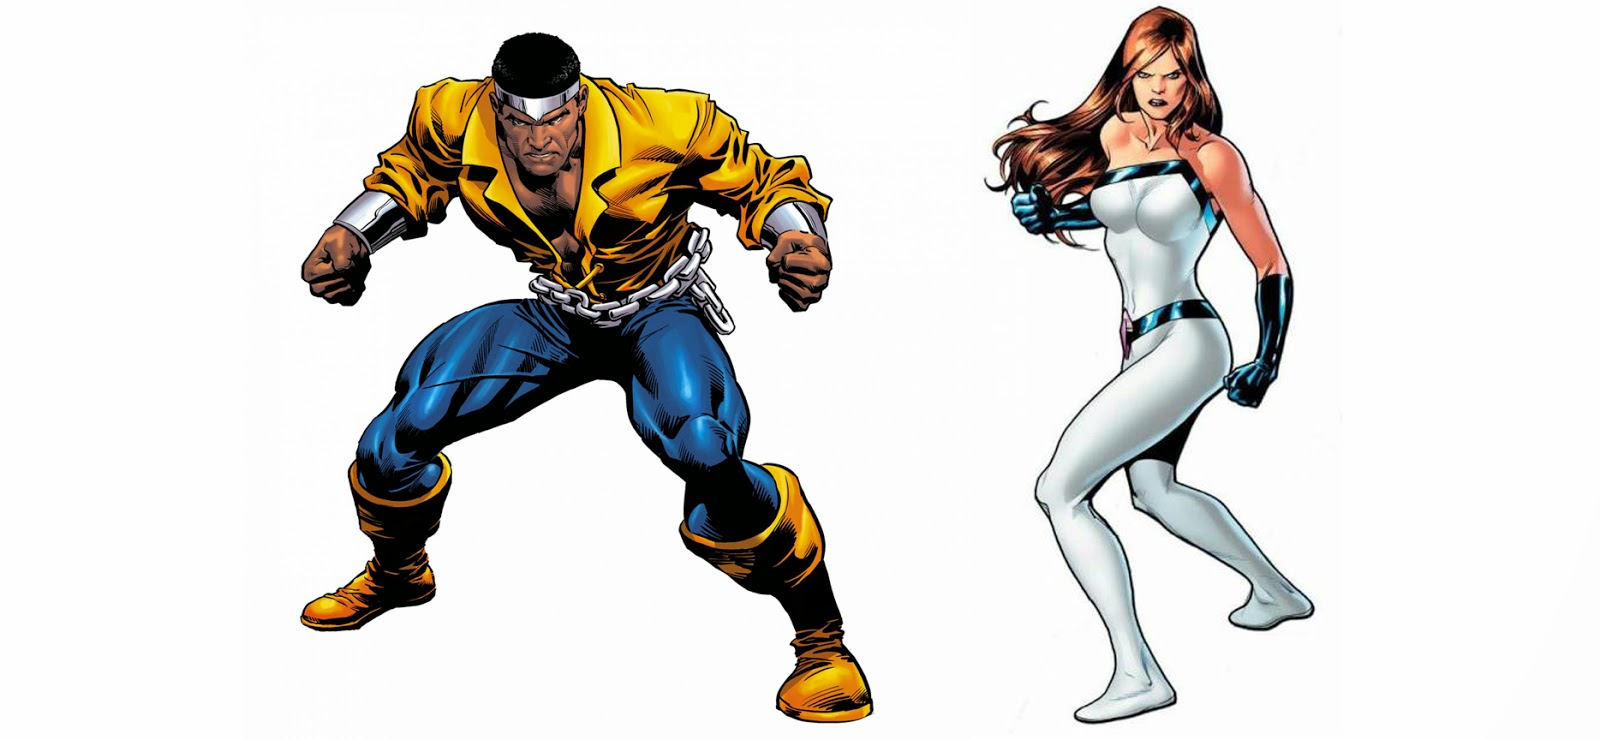 http://www.totalcomicmayhem.com/2014/12/luke-cage-and-jessica-jones-cast-for.html